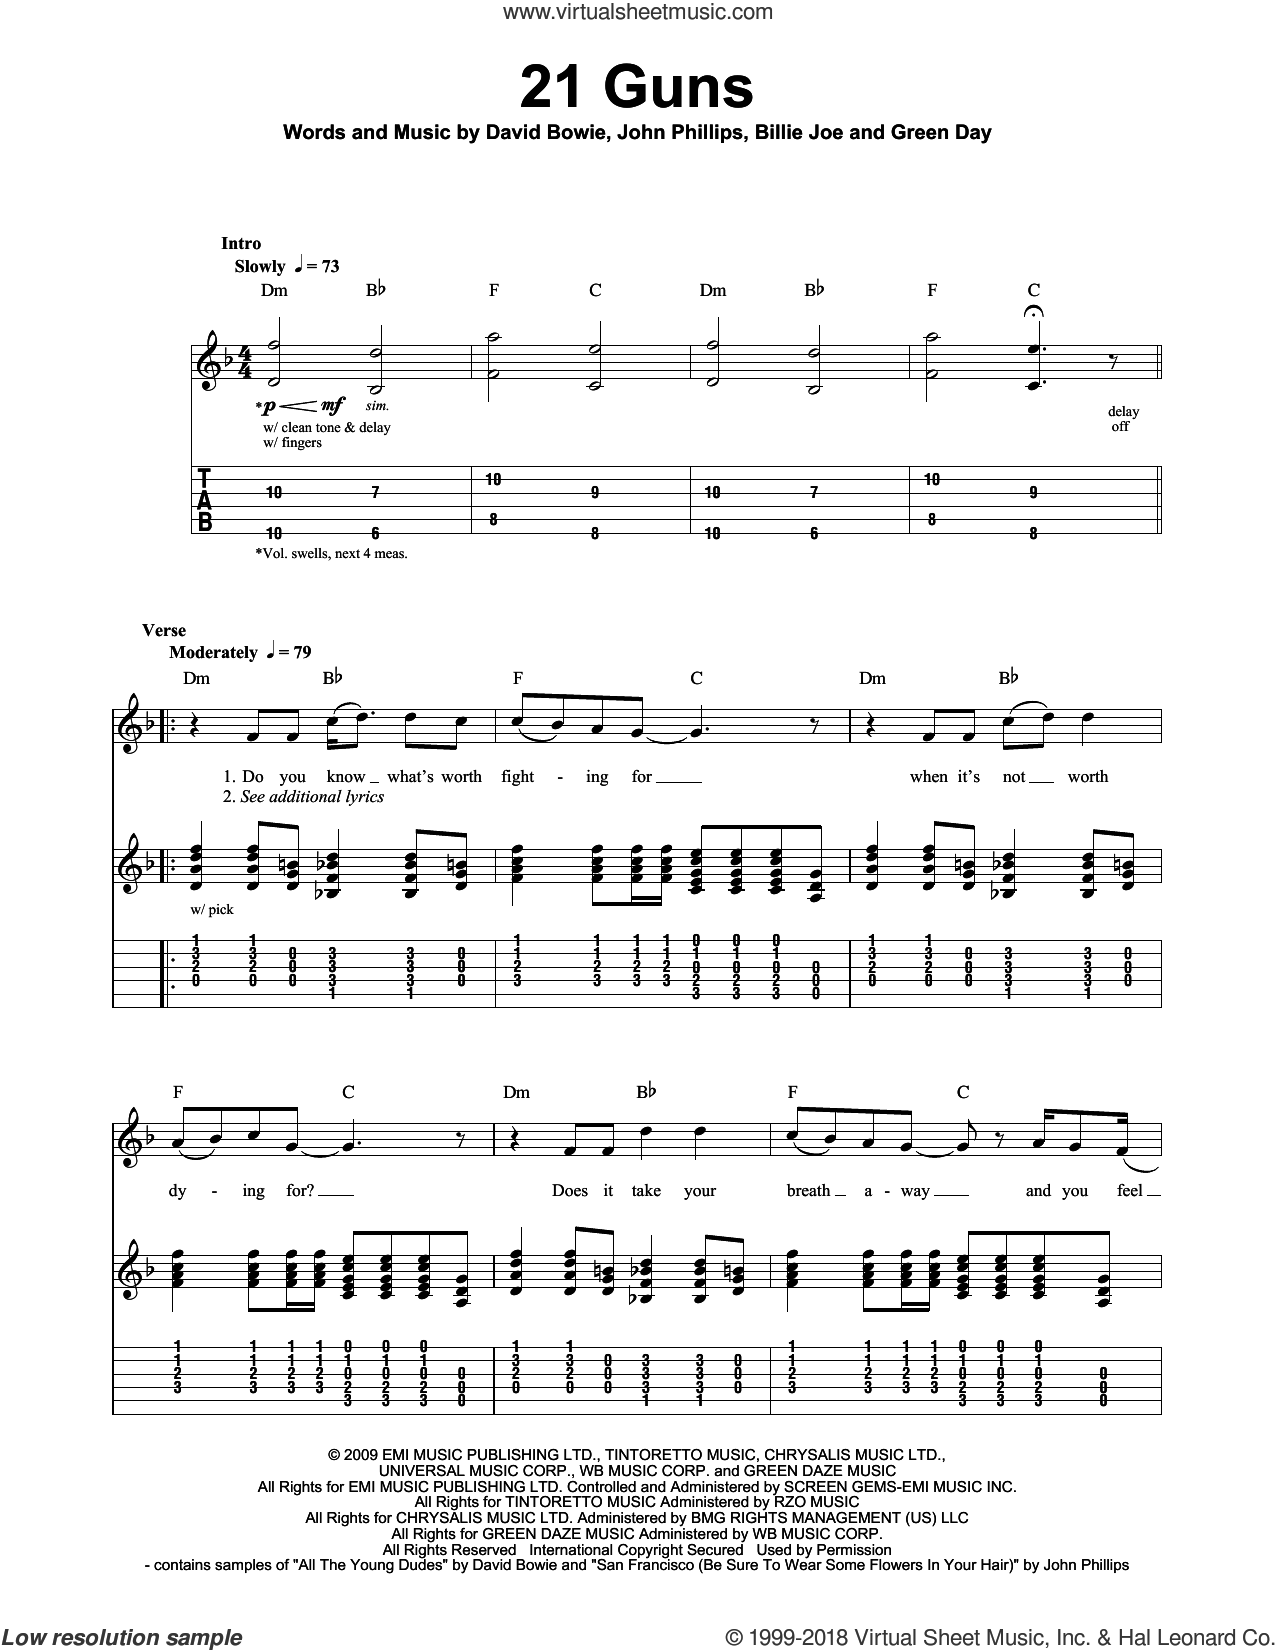 21 Guns sheet music for guitar (tablature, play-along) by Mike Pritchard, Green Day, Billie Joe Armstrong, David Bowie, Frank Wright and John Phillips